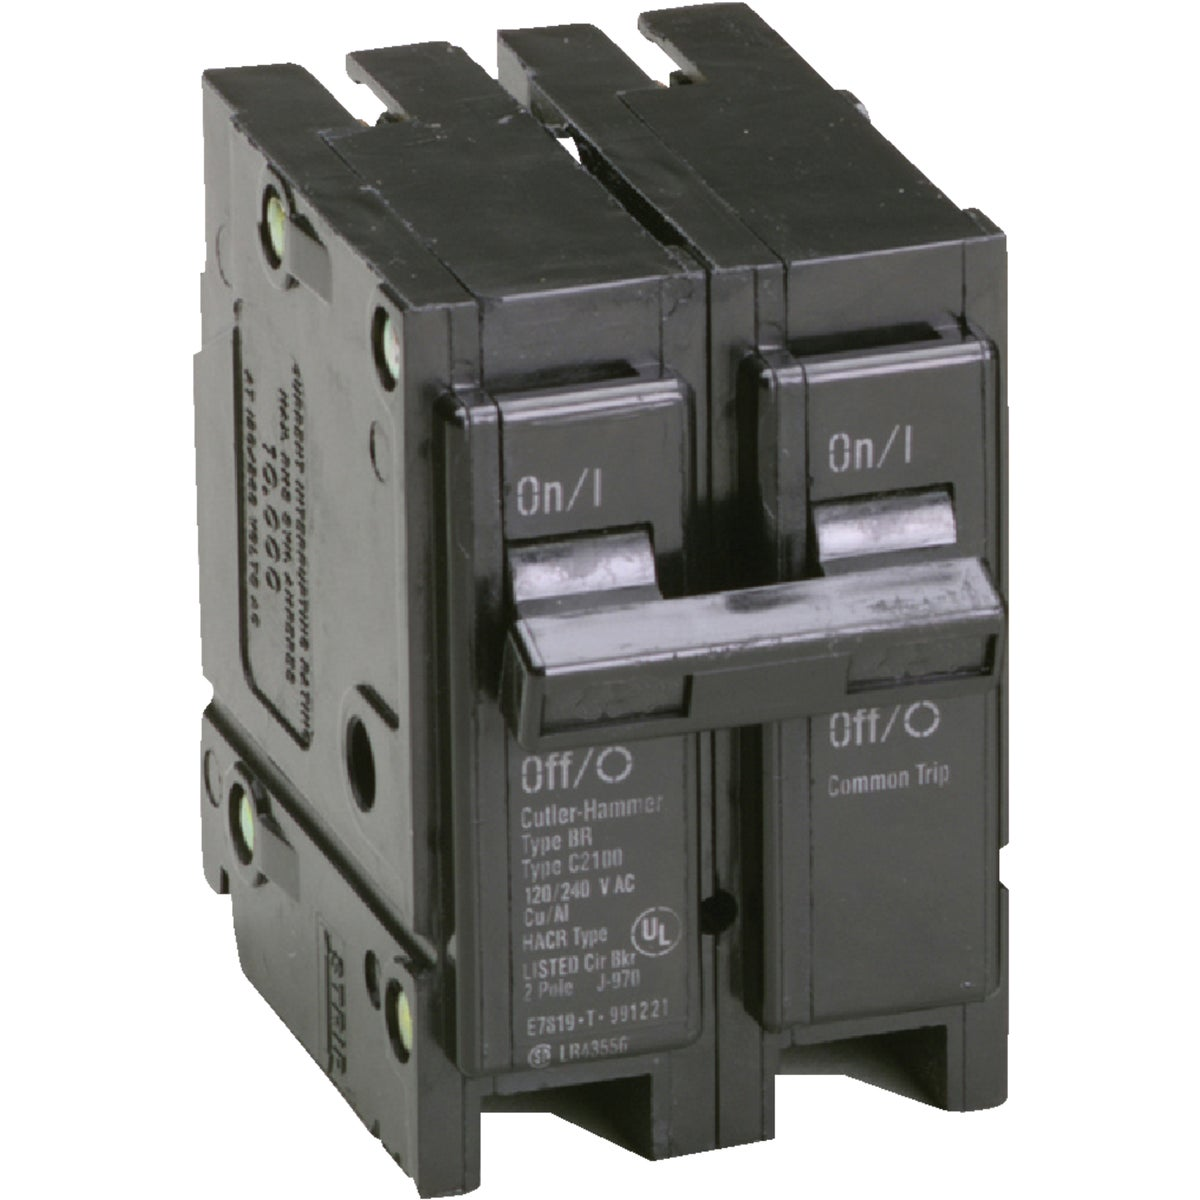 2P 25A CIRCUIT BREAKER - BR225 by Eaton Corporation